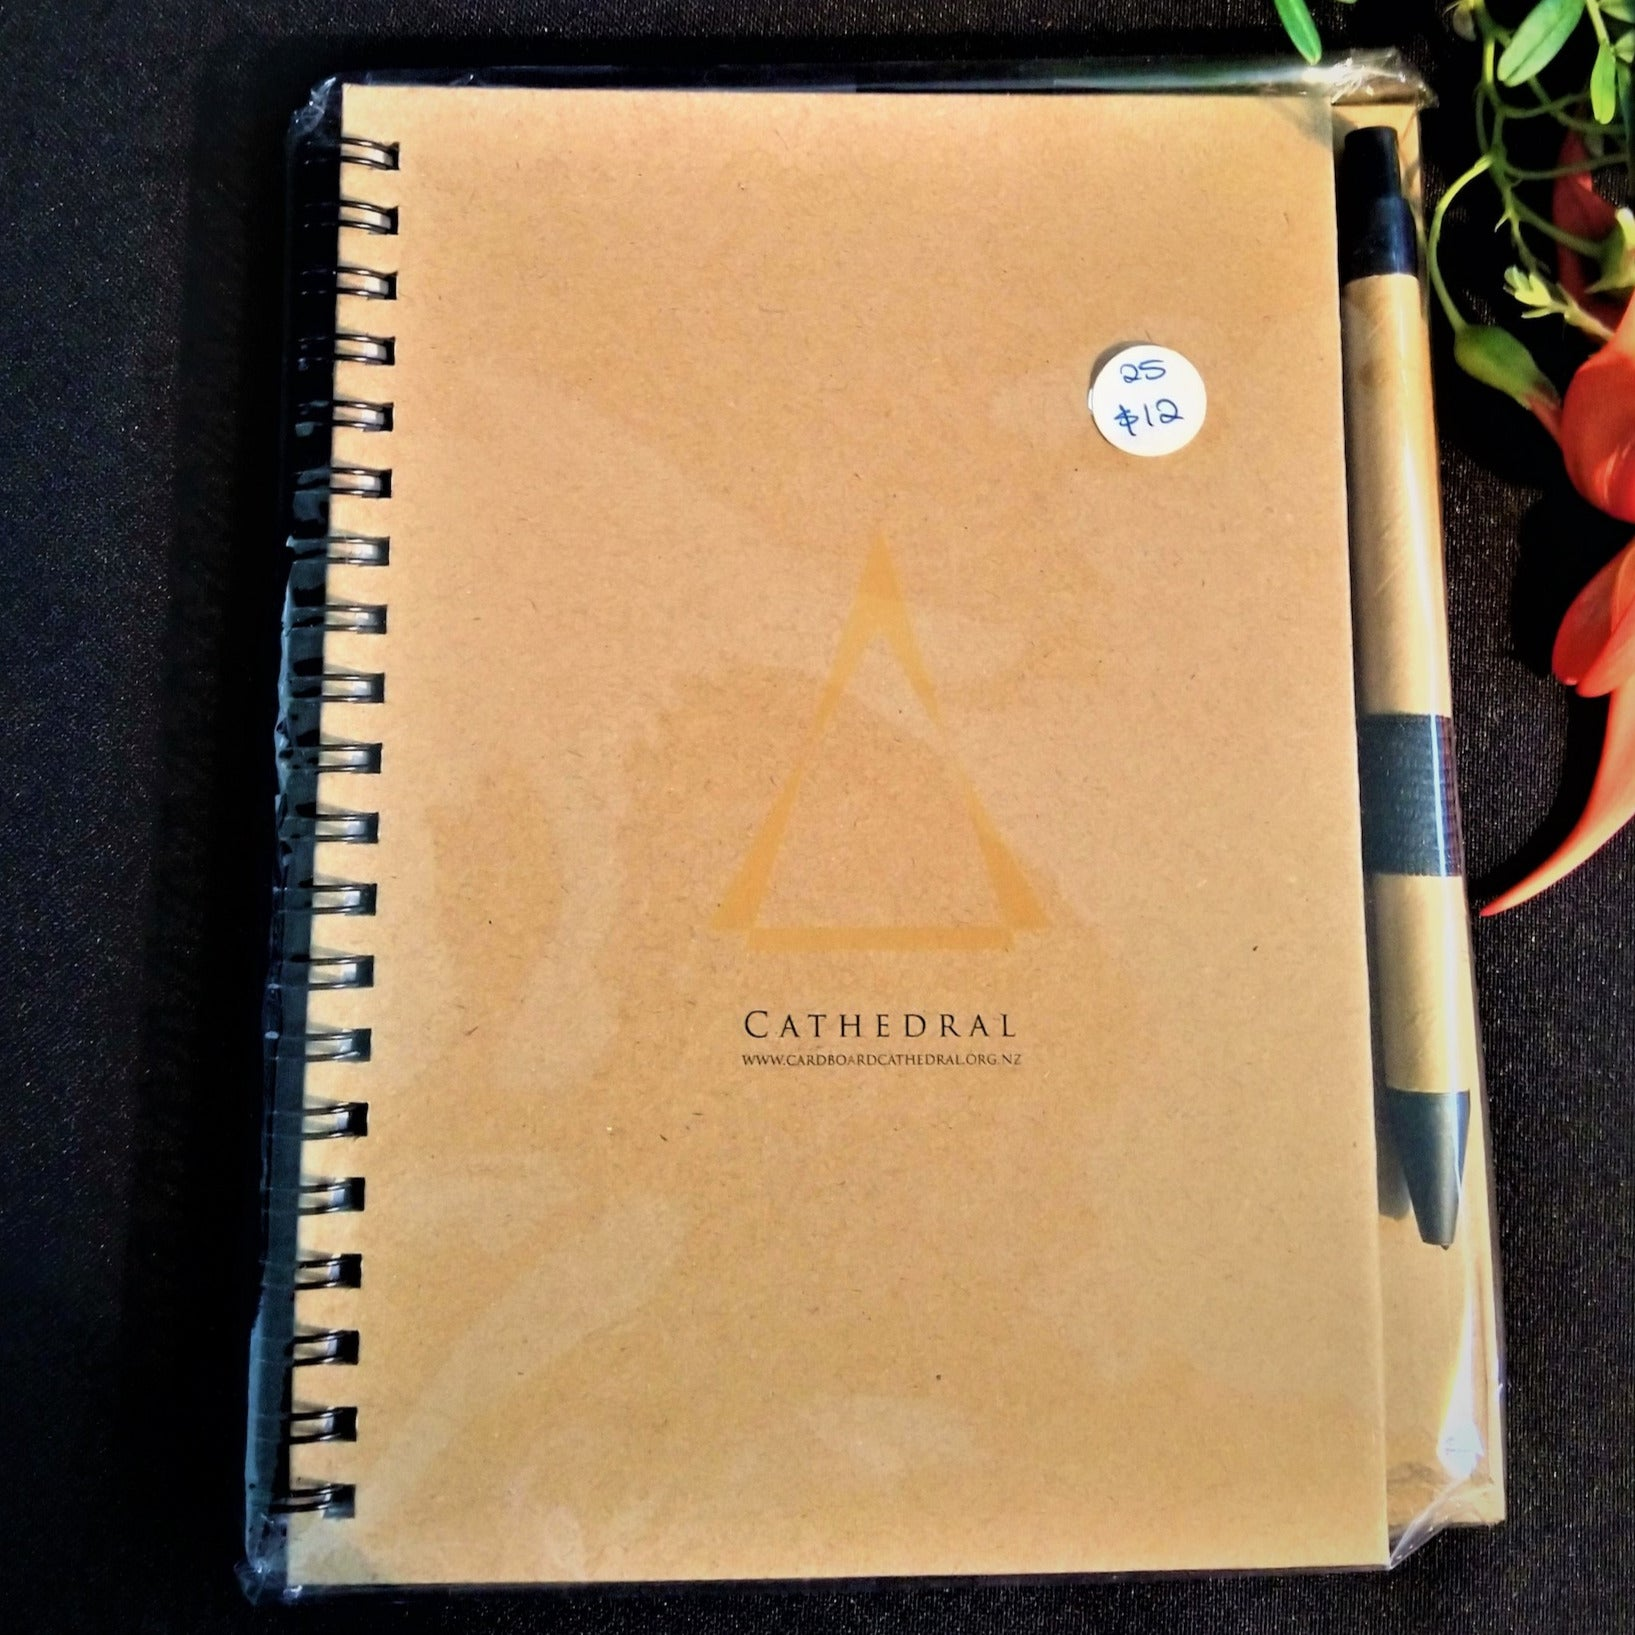 Cardboard Cathedral Notebook & Pen